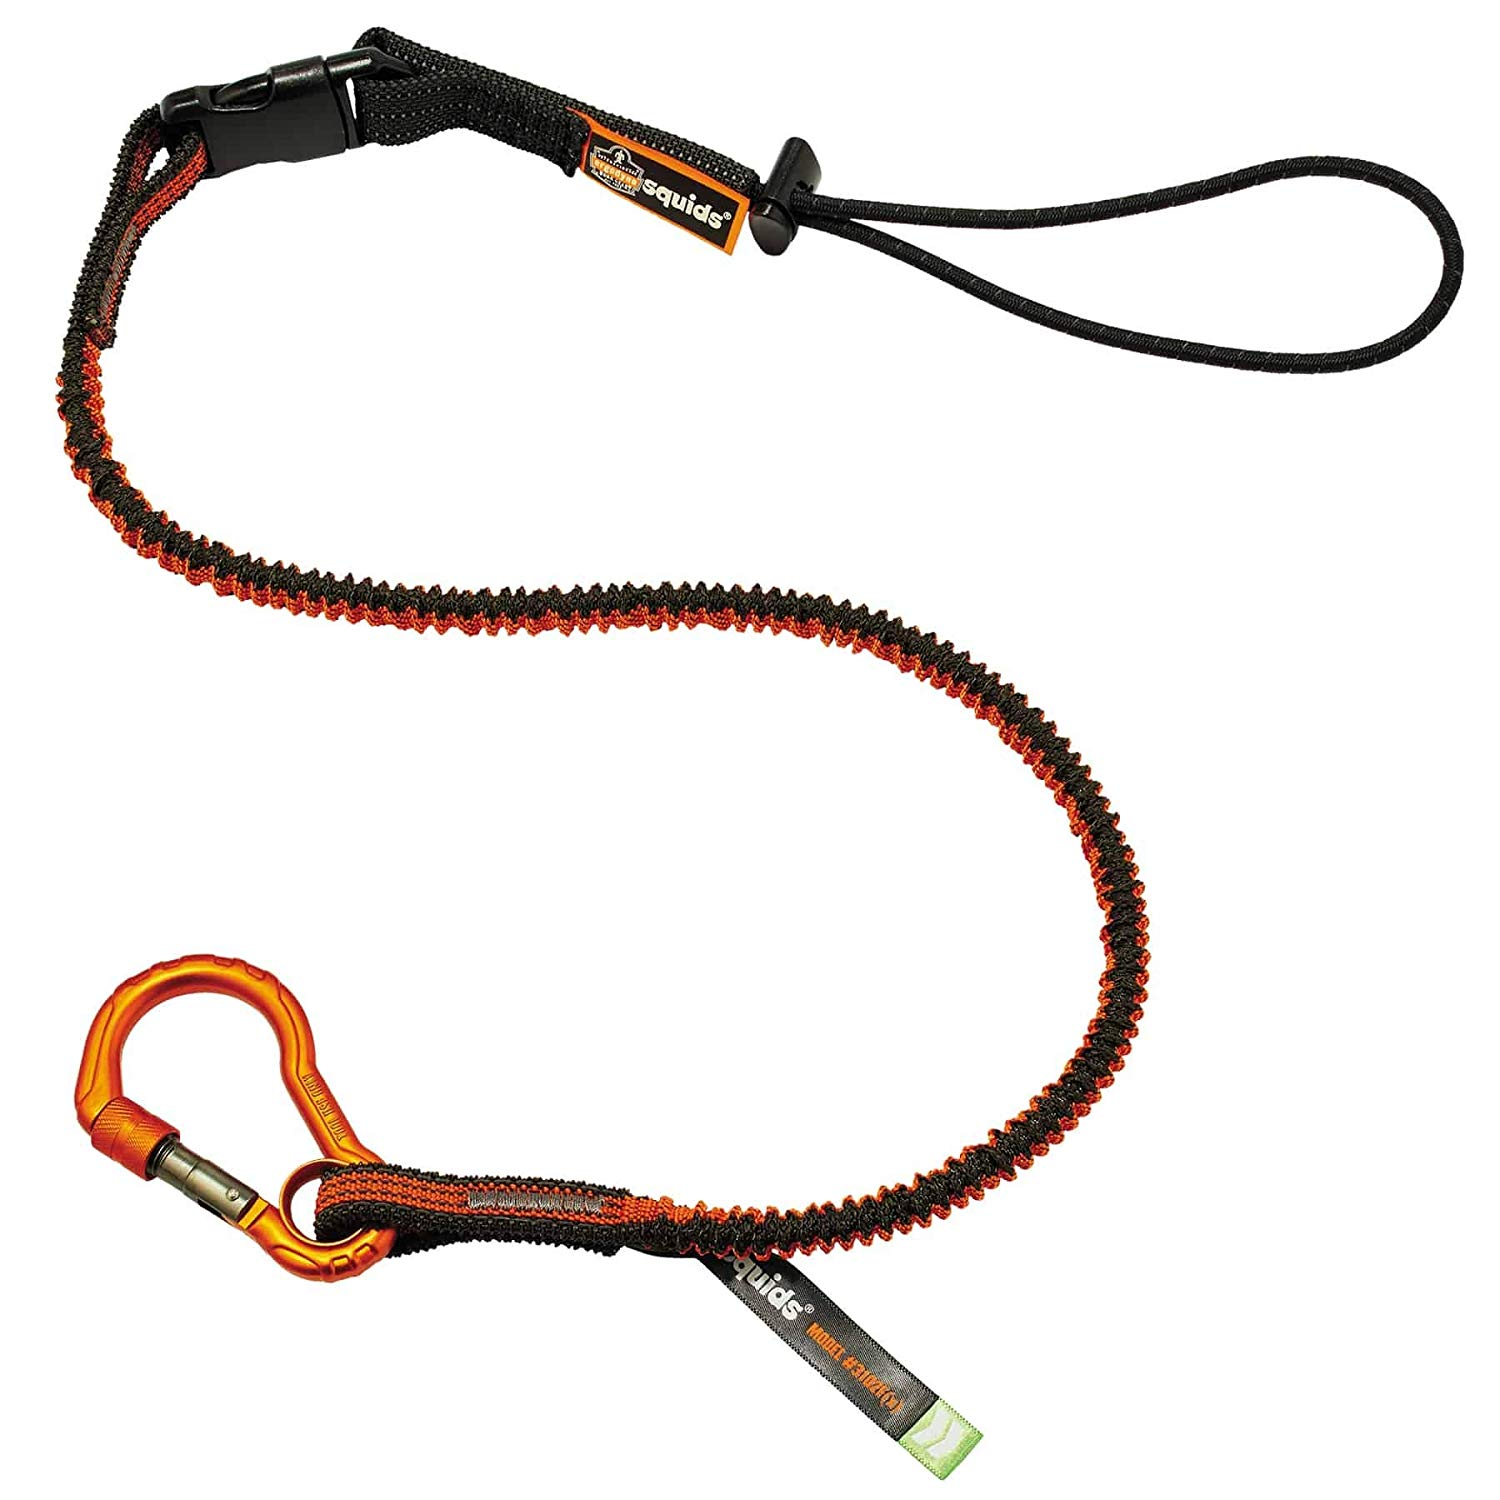 Shock Absorbing Tool Lanyard with Self-Locking Carabiner and Detachable Loop End, Tool Weight Capacity 5lbs, Squids 3102, Approved to the ANSI/ISEA 121-2018.., By Ergodyne